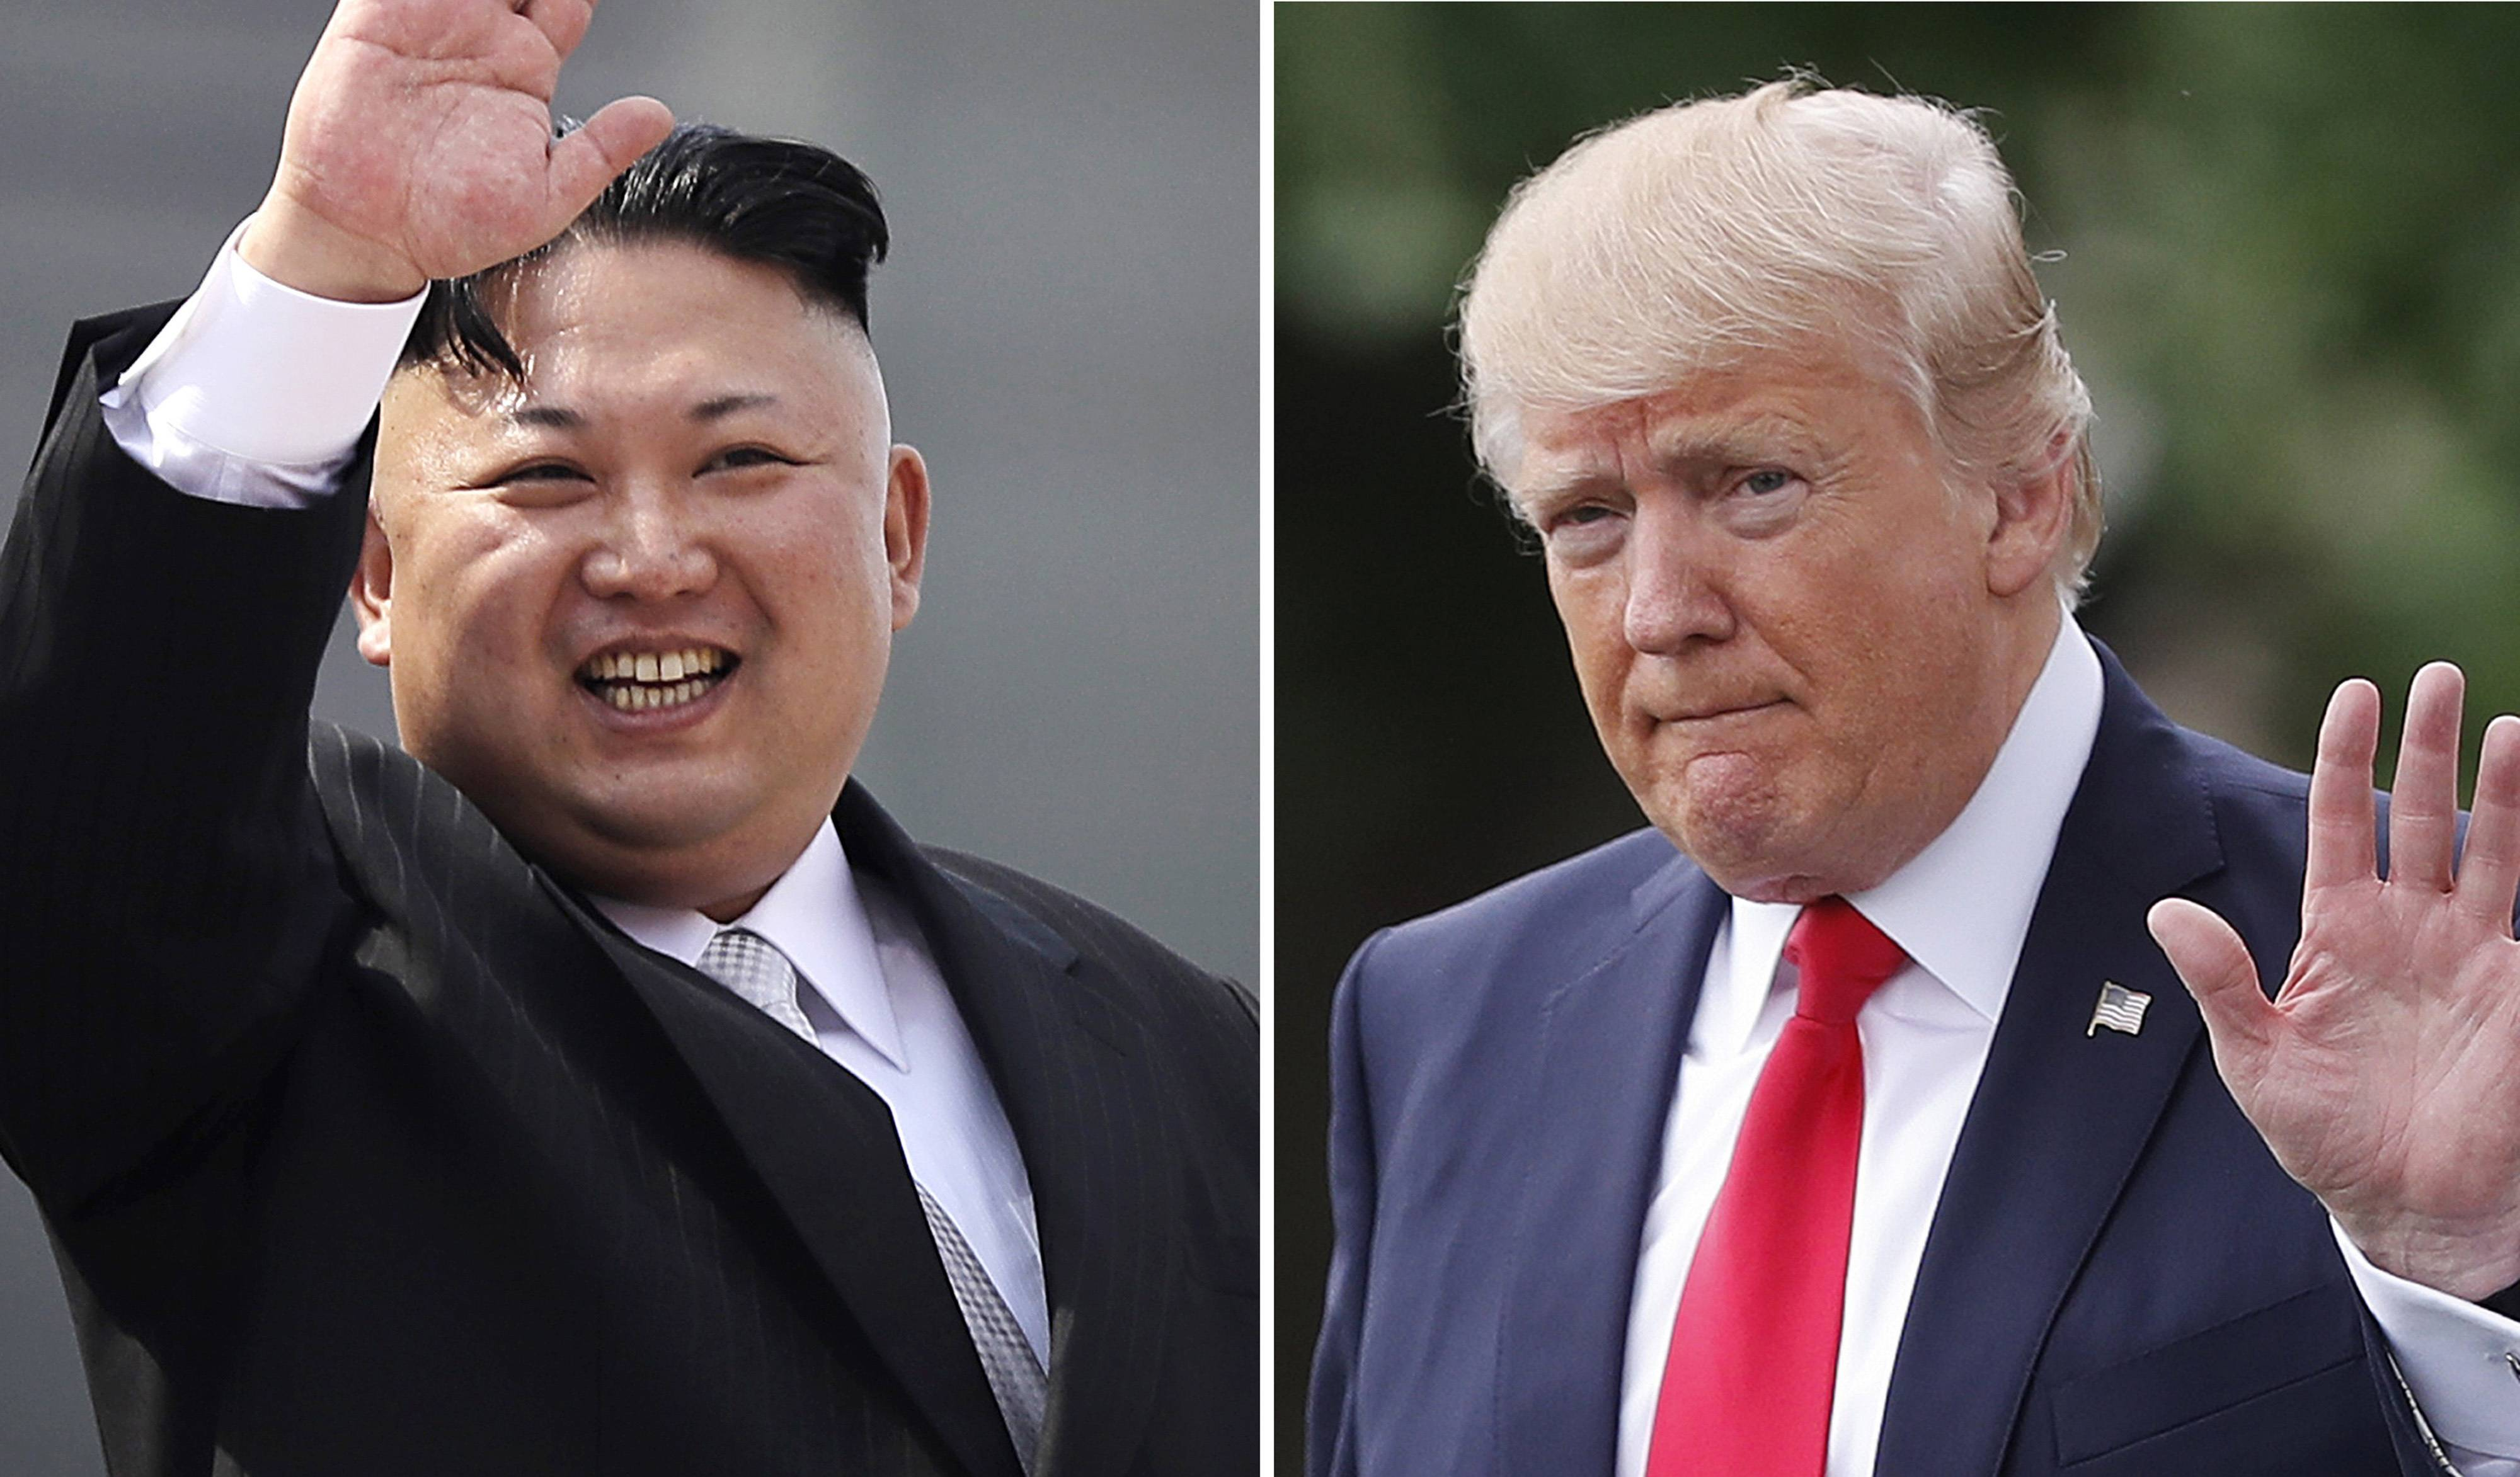 This combination of photos show North Korean leader Kim Jong Un on April 15, 2017, in Pyongyang, North Korea, left, and U.S. President Donald Trump in Washington on April 29, 2017.